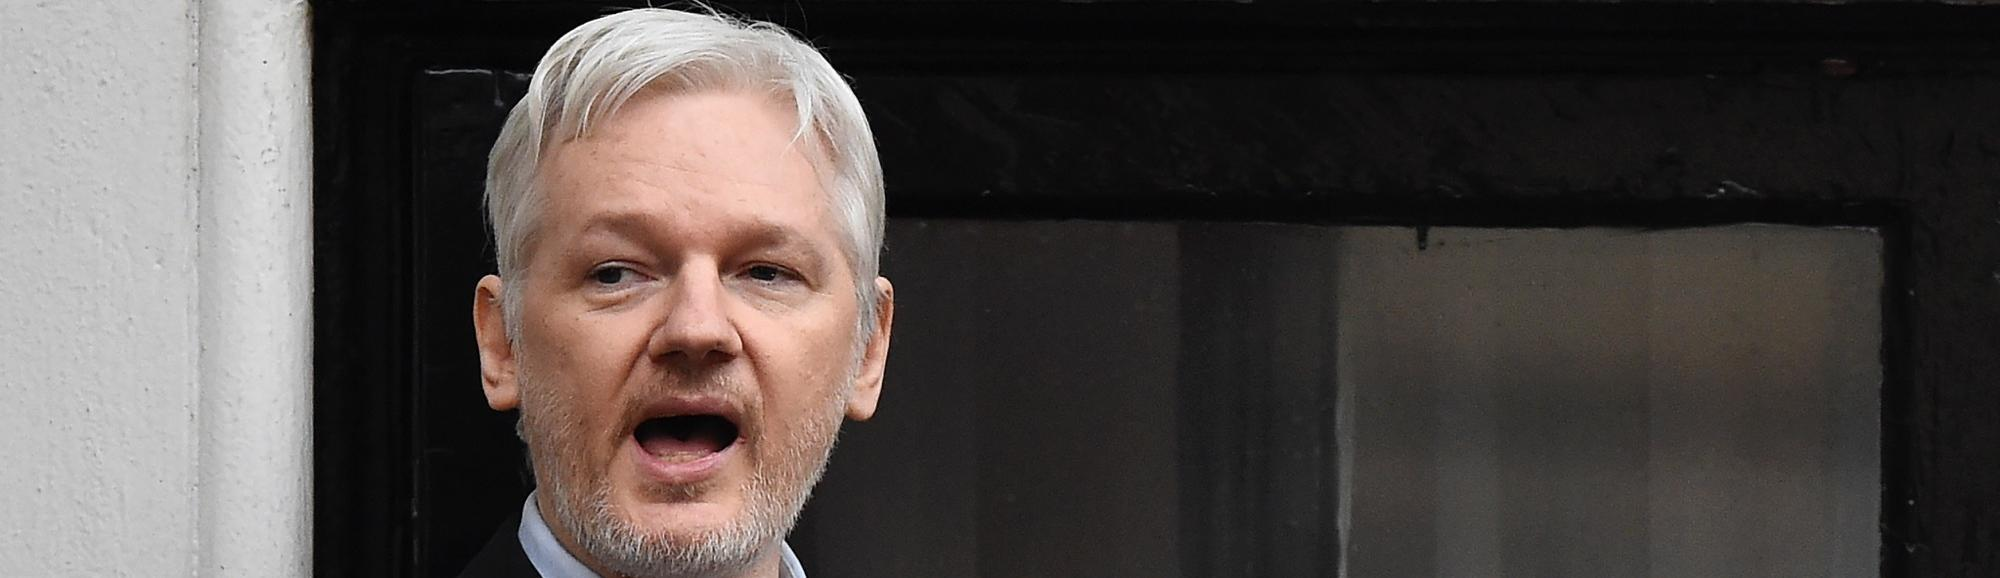 Wikileaks Says Secretive Trade Agreement Paves Way to 'Corporatization of Public Services'